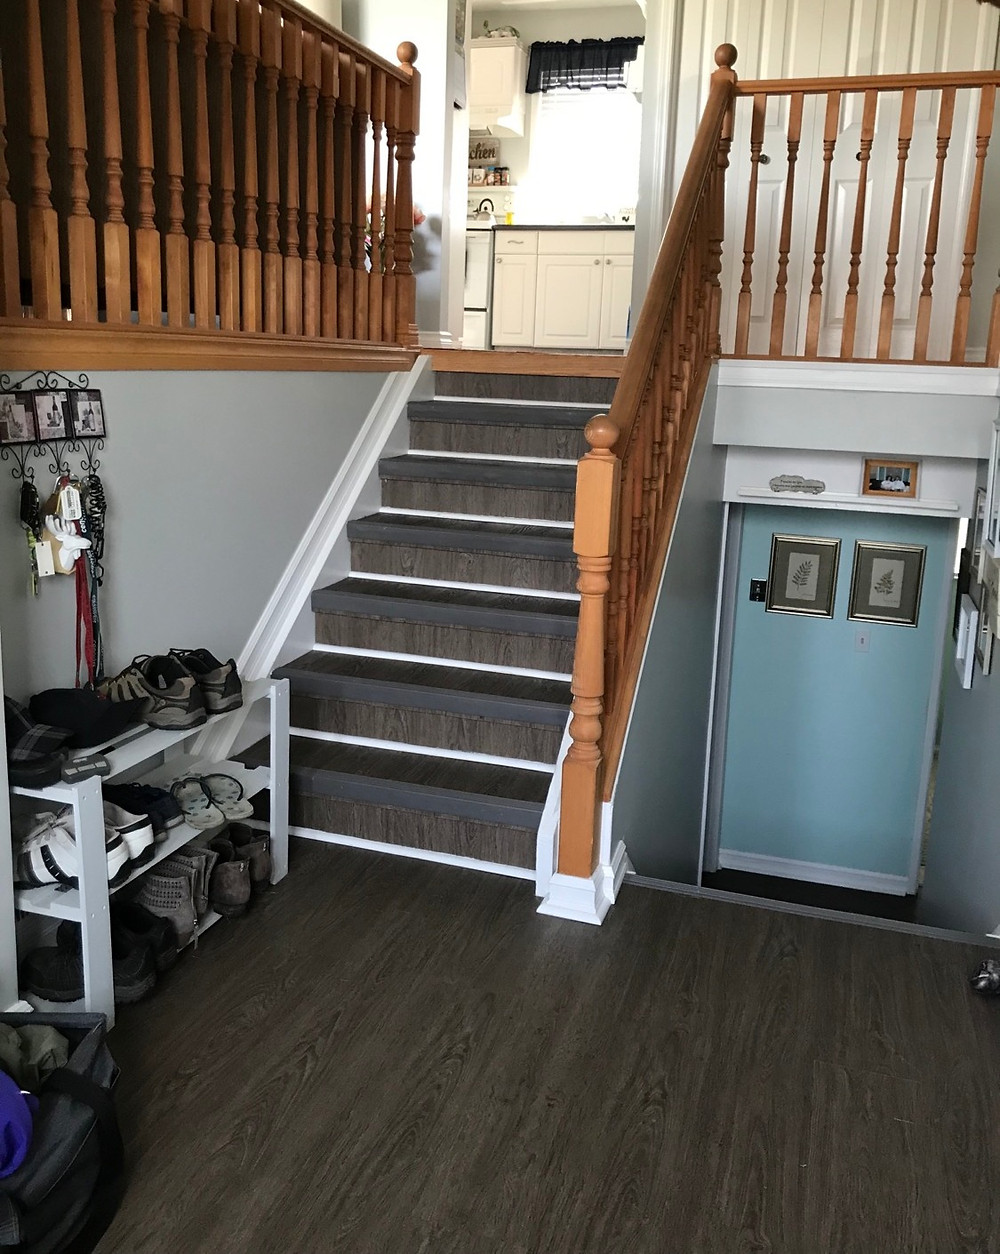 How To Paint Stair Spindles the Easy Way   Before Oak Spindles